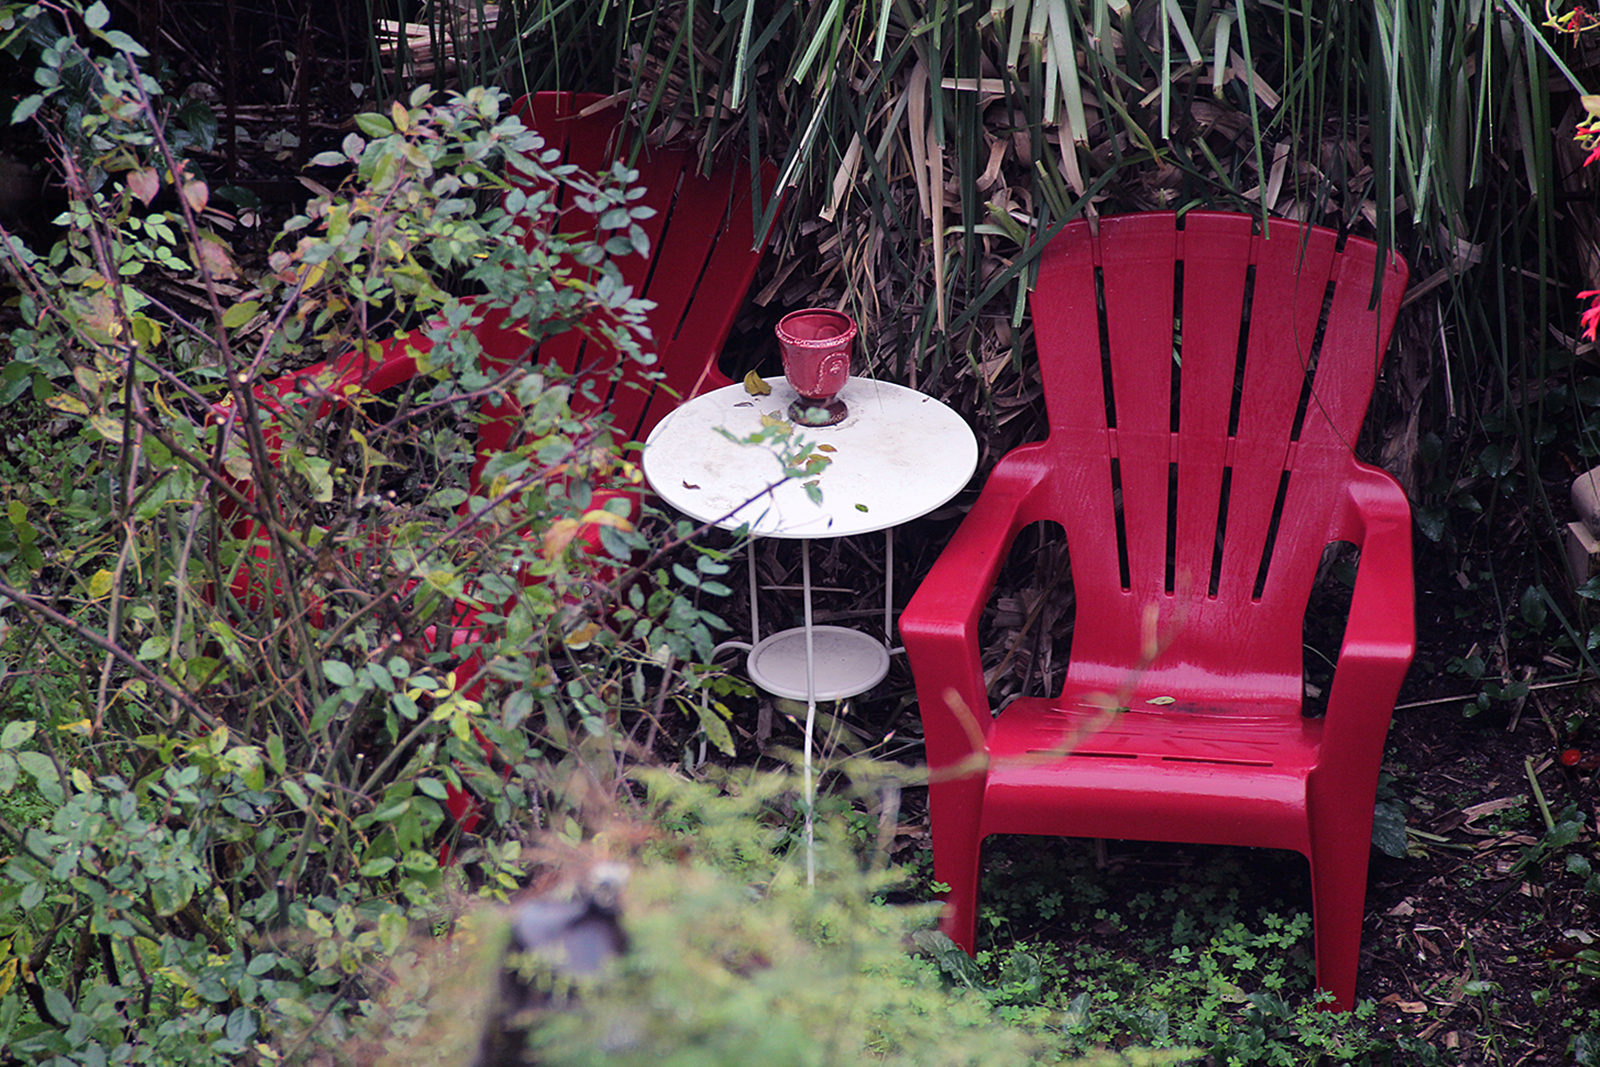 A red chair out in the rain in a backyard.